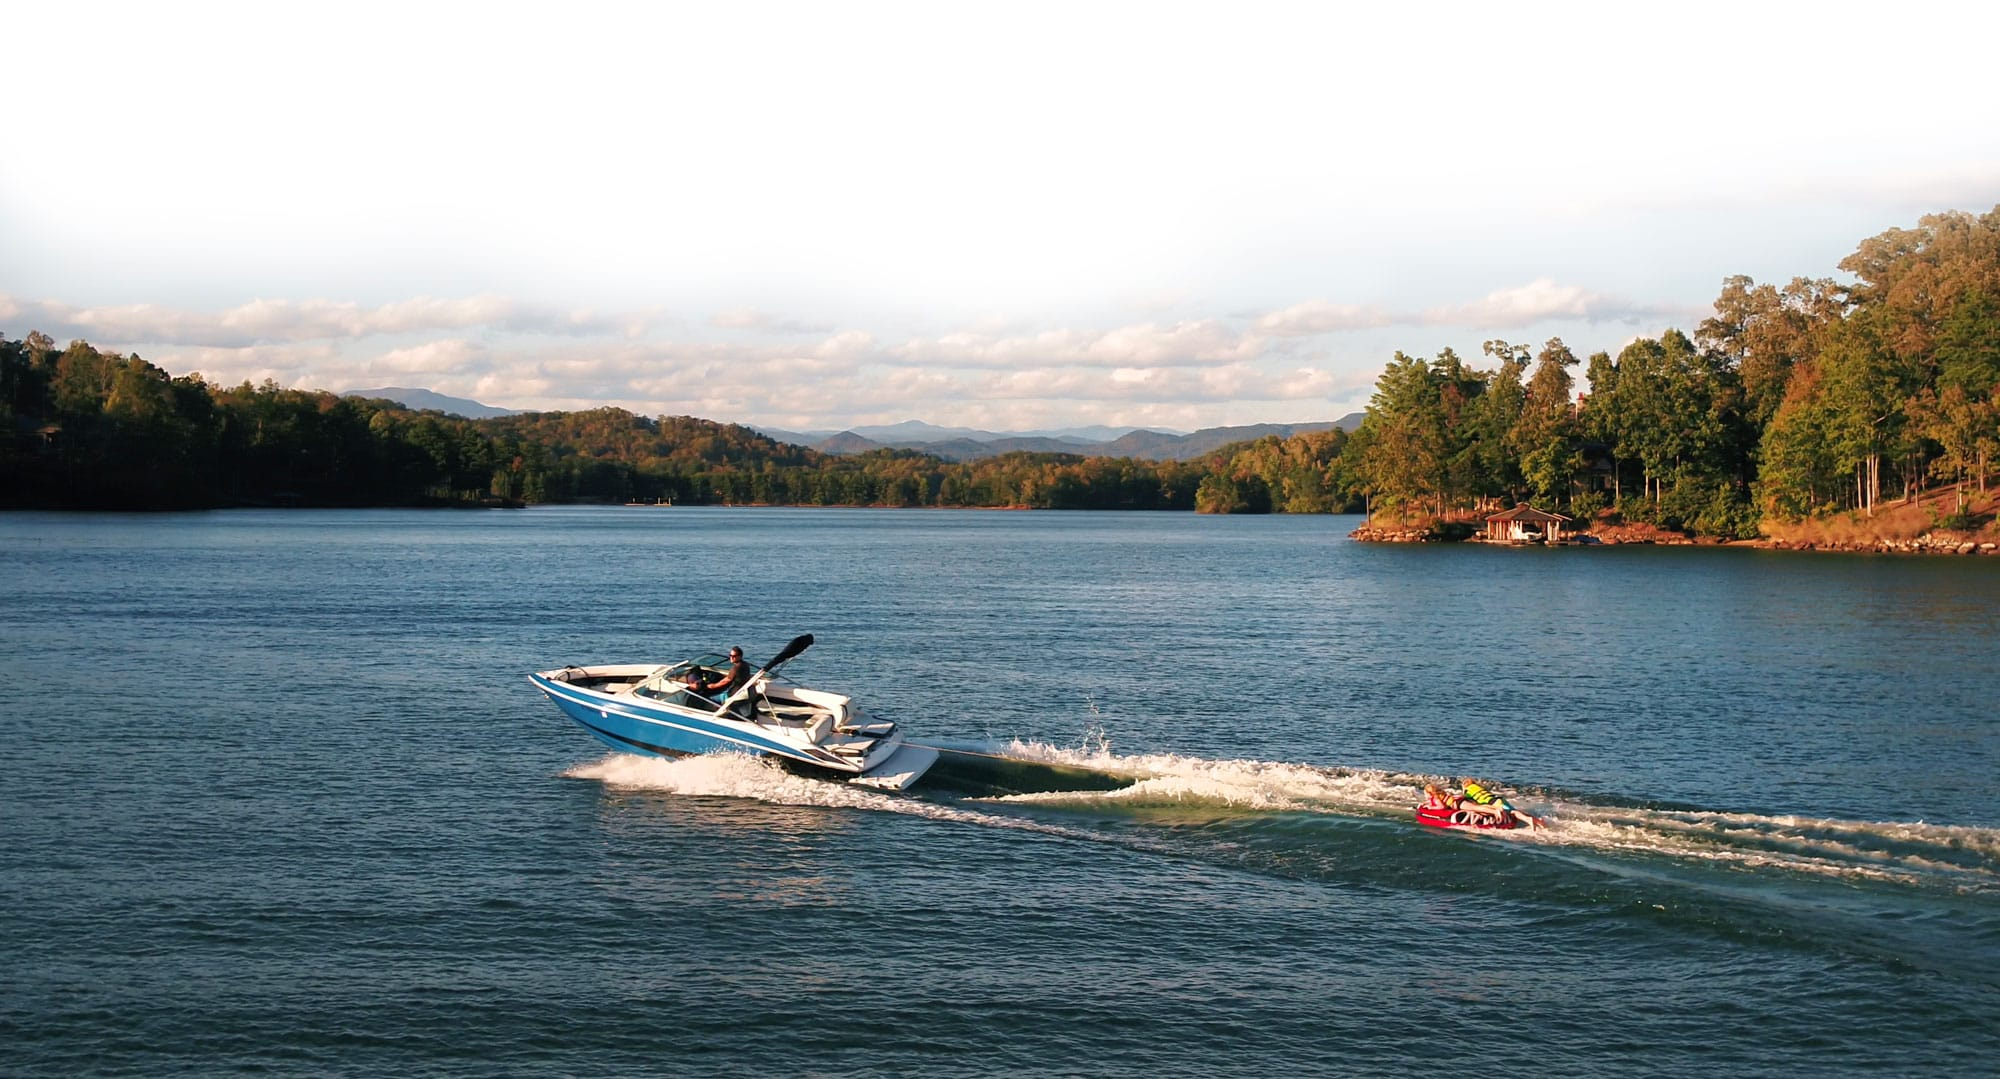 Wakeboarding at Lake Keowee